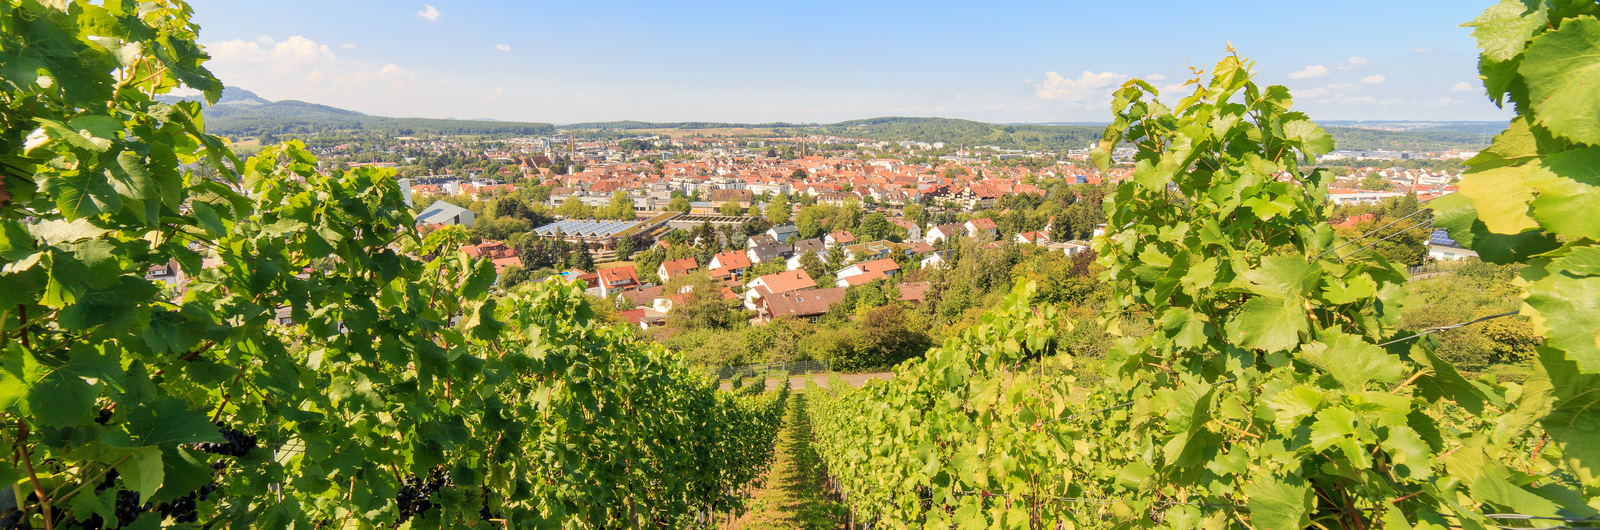 metzingen city header